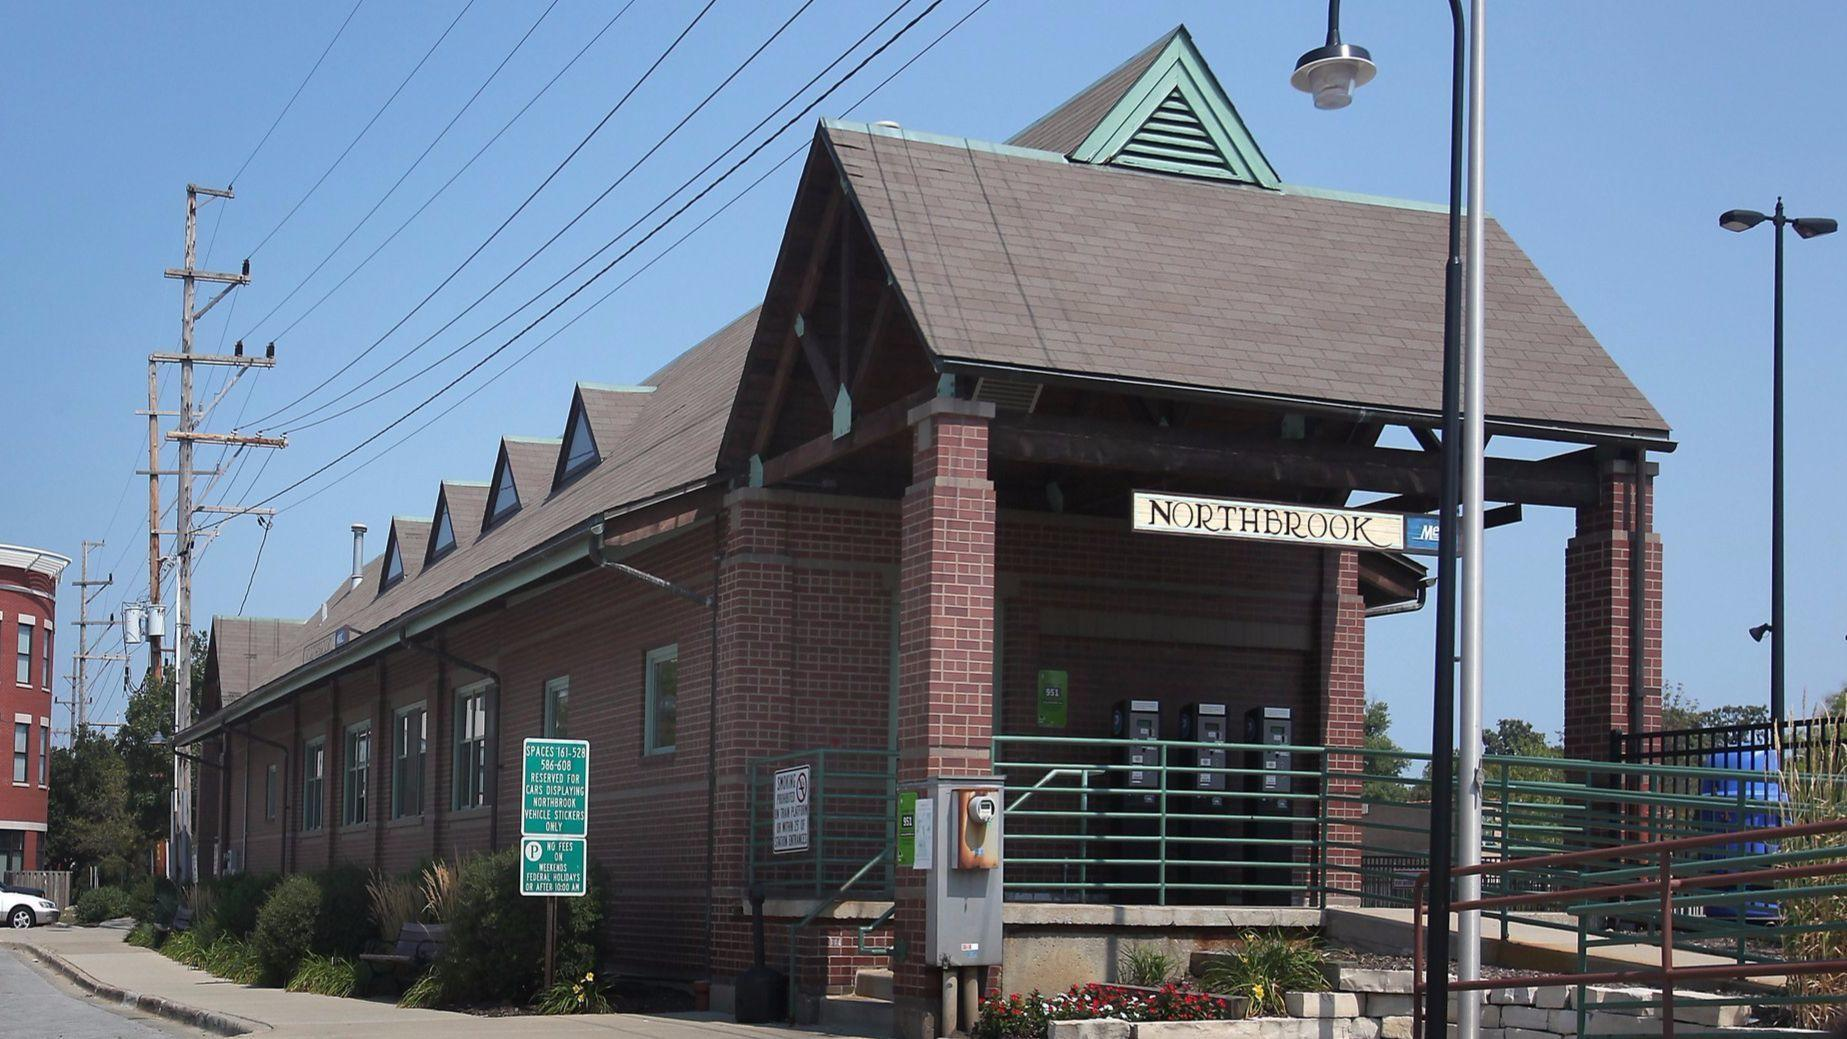 Northbrook Exploring Possibility Of Moving Metra Station To Grainger  Property   Northbrook Star